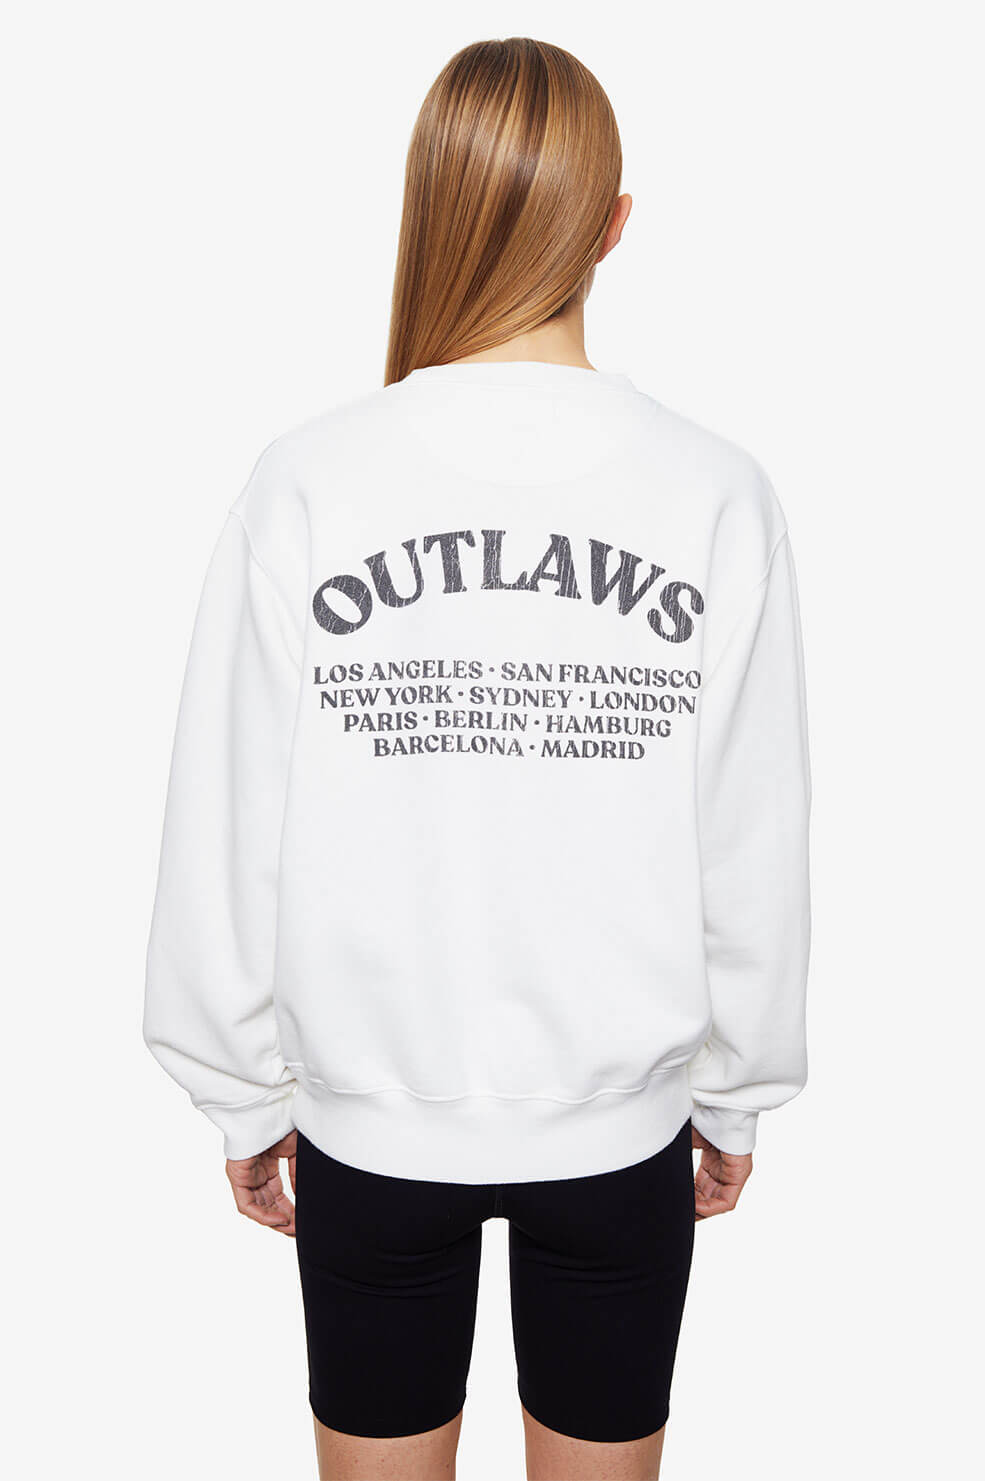 Ramona Sweatshirt Outlaw  product image